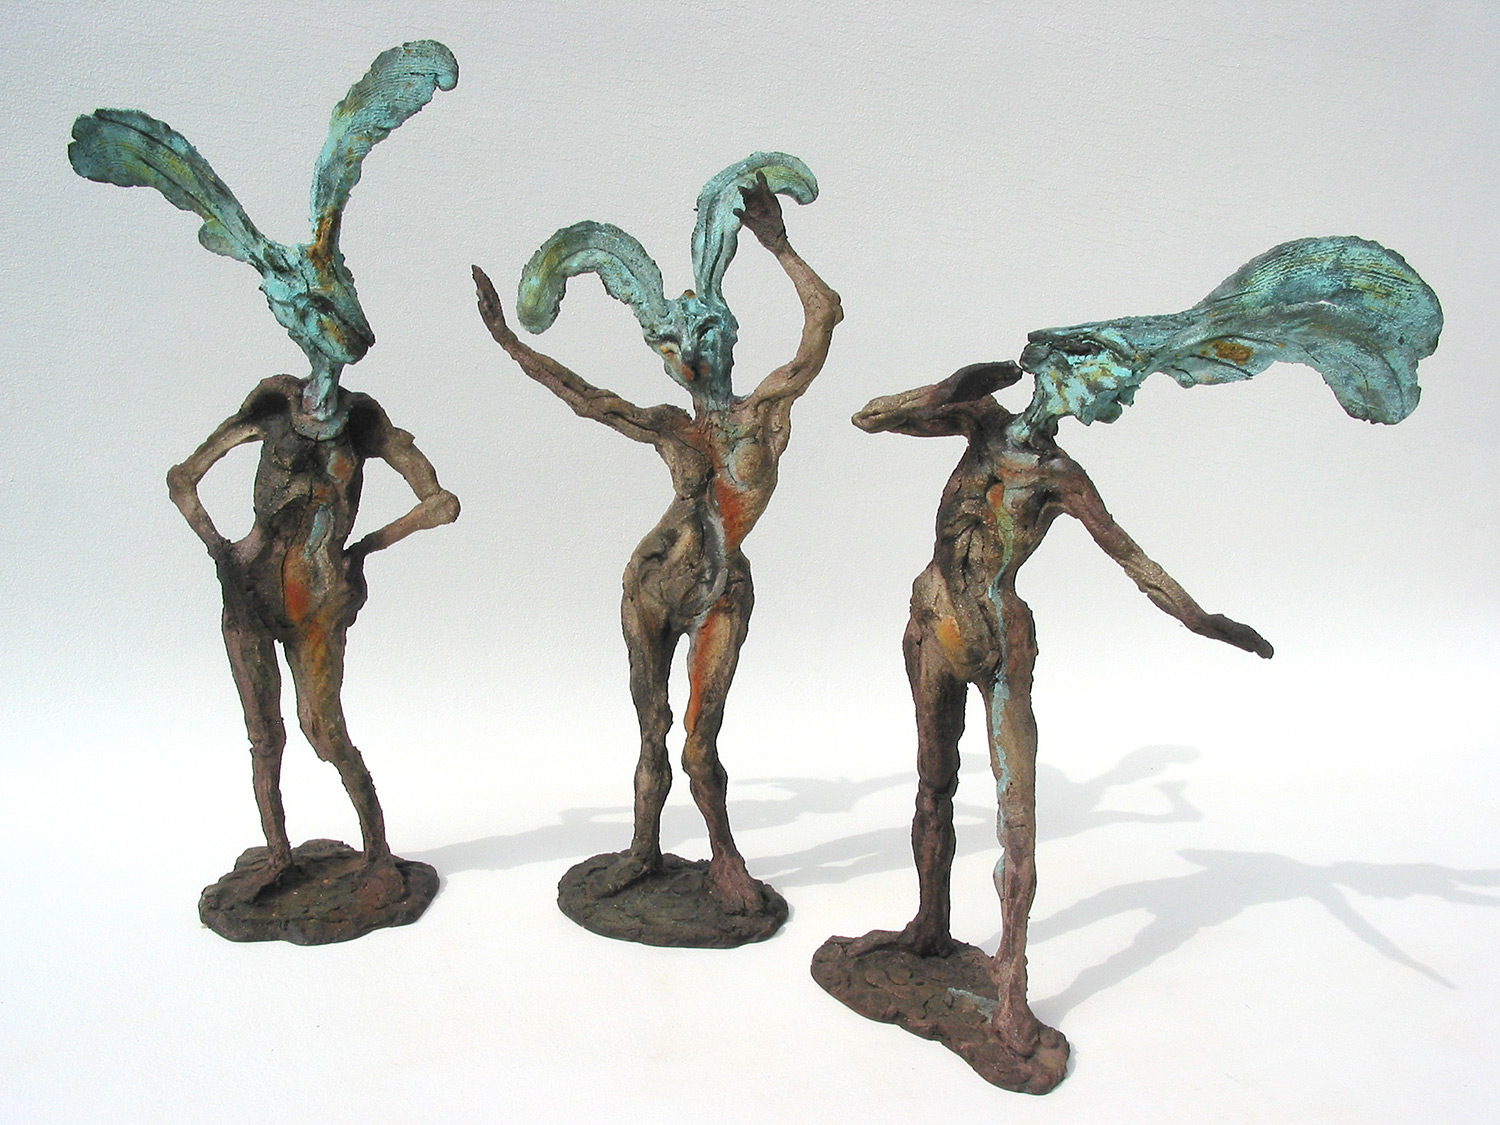 """The Three Graces  ©  47 cm high x 56 cm wide  Unique  The Graces from Greek mythology was interpreted by Mannerist sculptors in marble: """"I couldn't help parodying it in the title. A spontaneous sketch in clay."""""""